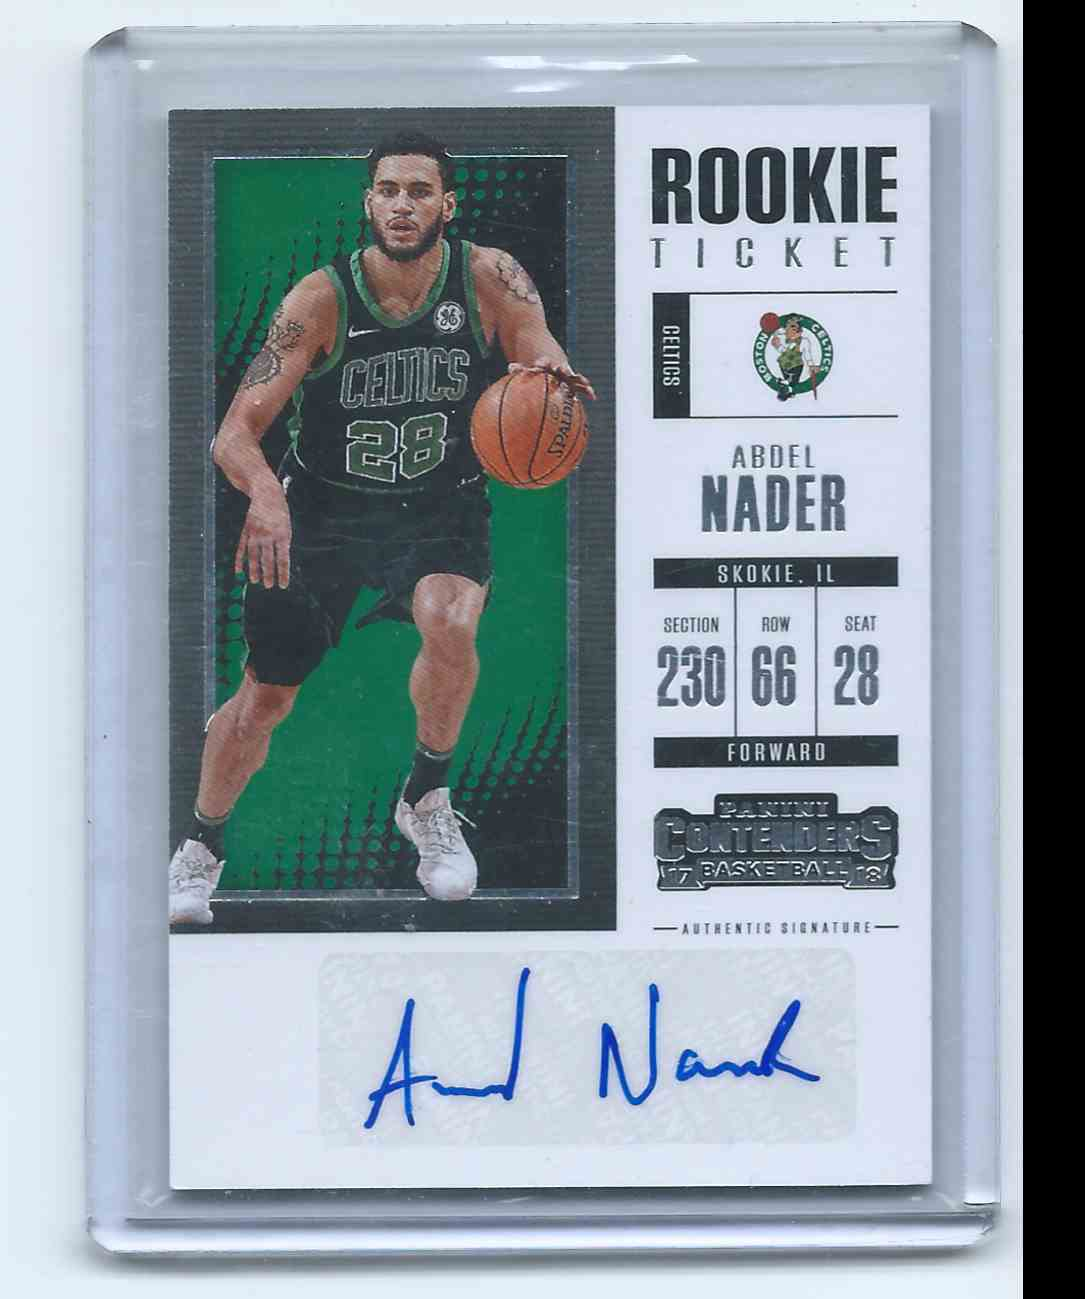 2017-18 Panini Contenders Retail Rookie Ticket Autographs Abdel Nader #ST-AND card front image